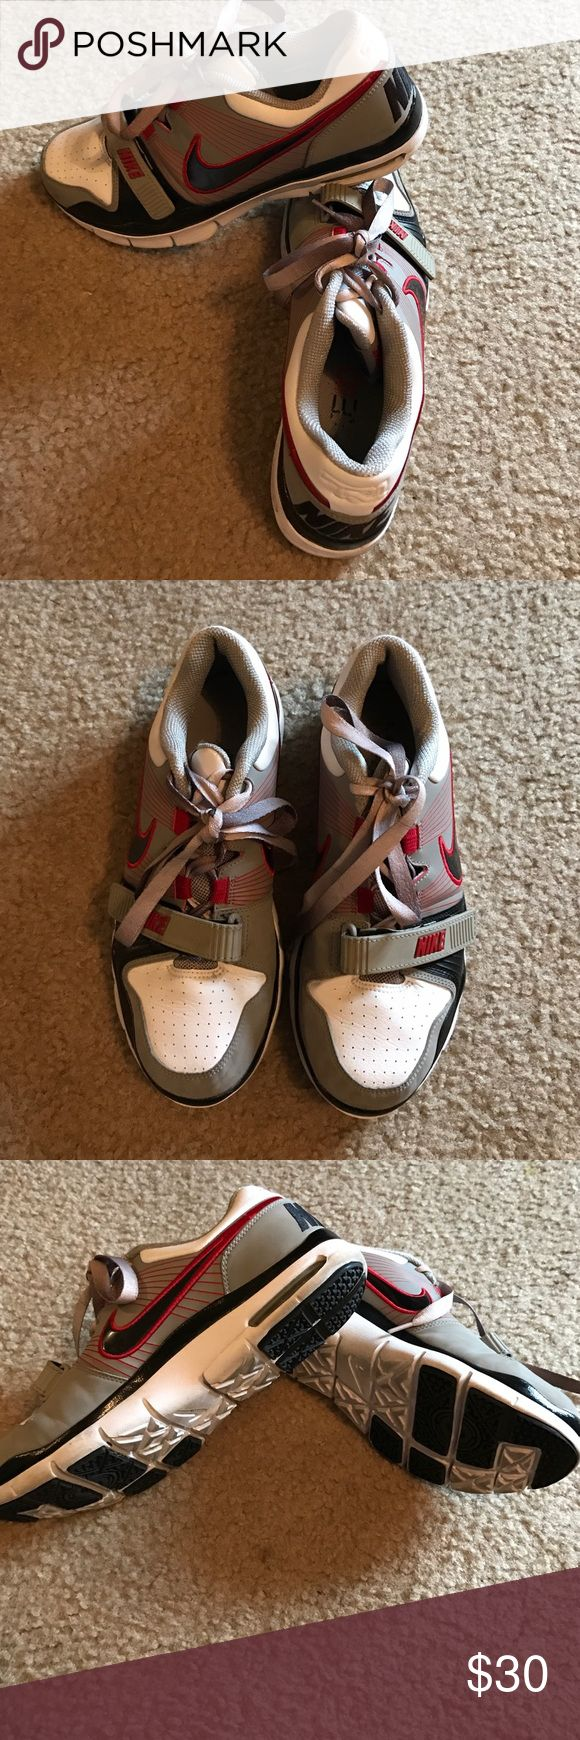 NIKE ID's: custom designed nike id's these nikes were customed deaigned. velcro strap to secure laces. red. black. grey and white. EUC. great for lifting or street style. Nike Shoes Athletic Shoes